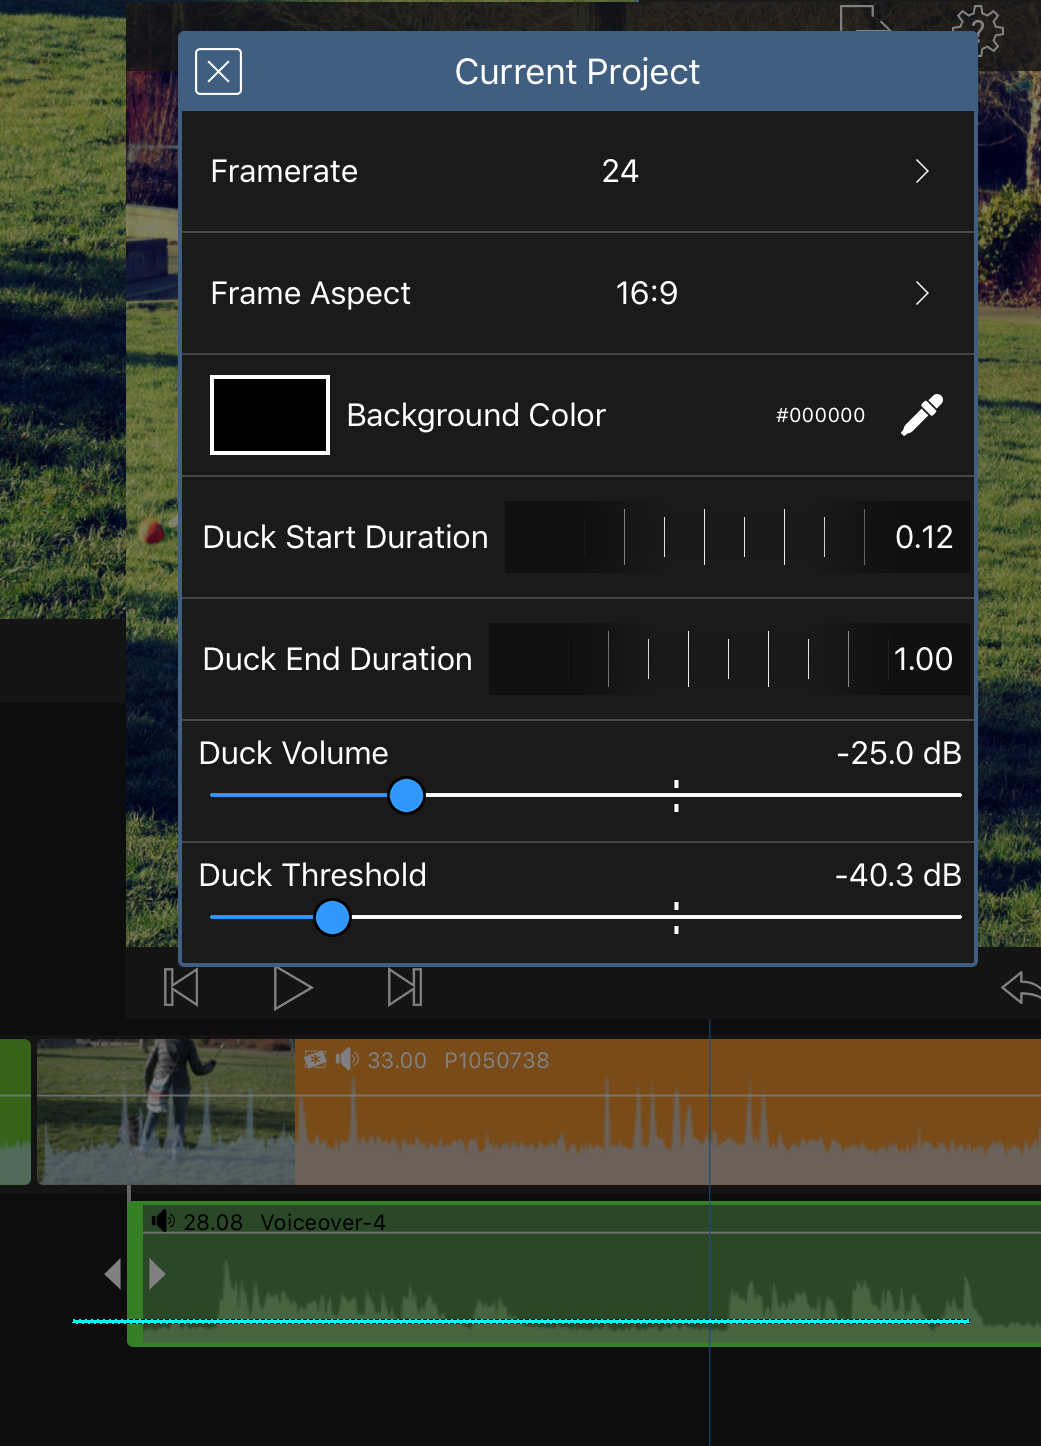 IMG_1758 duck threshold.png